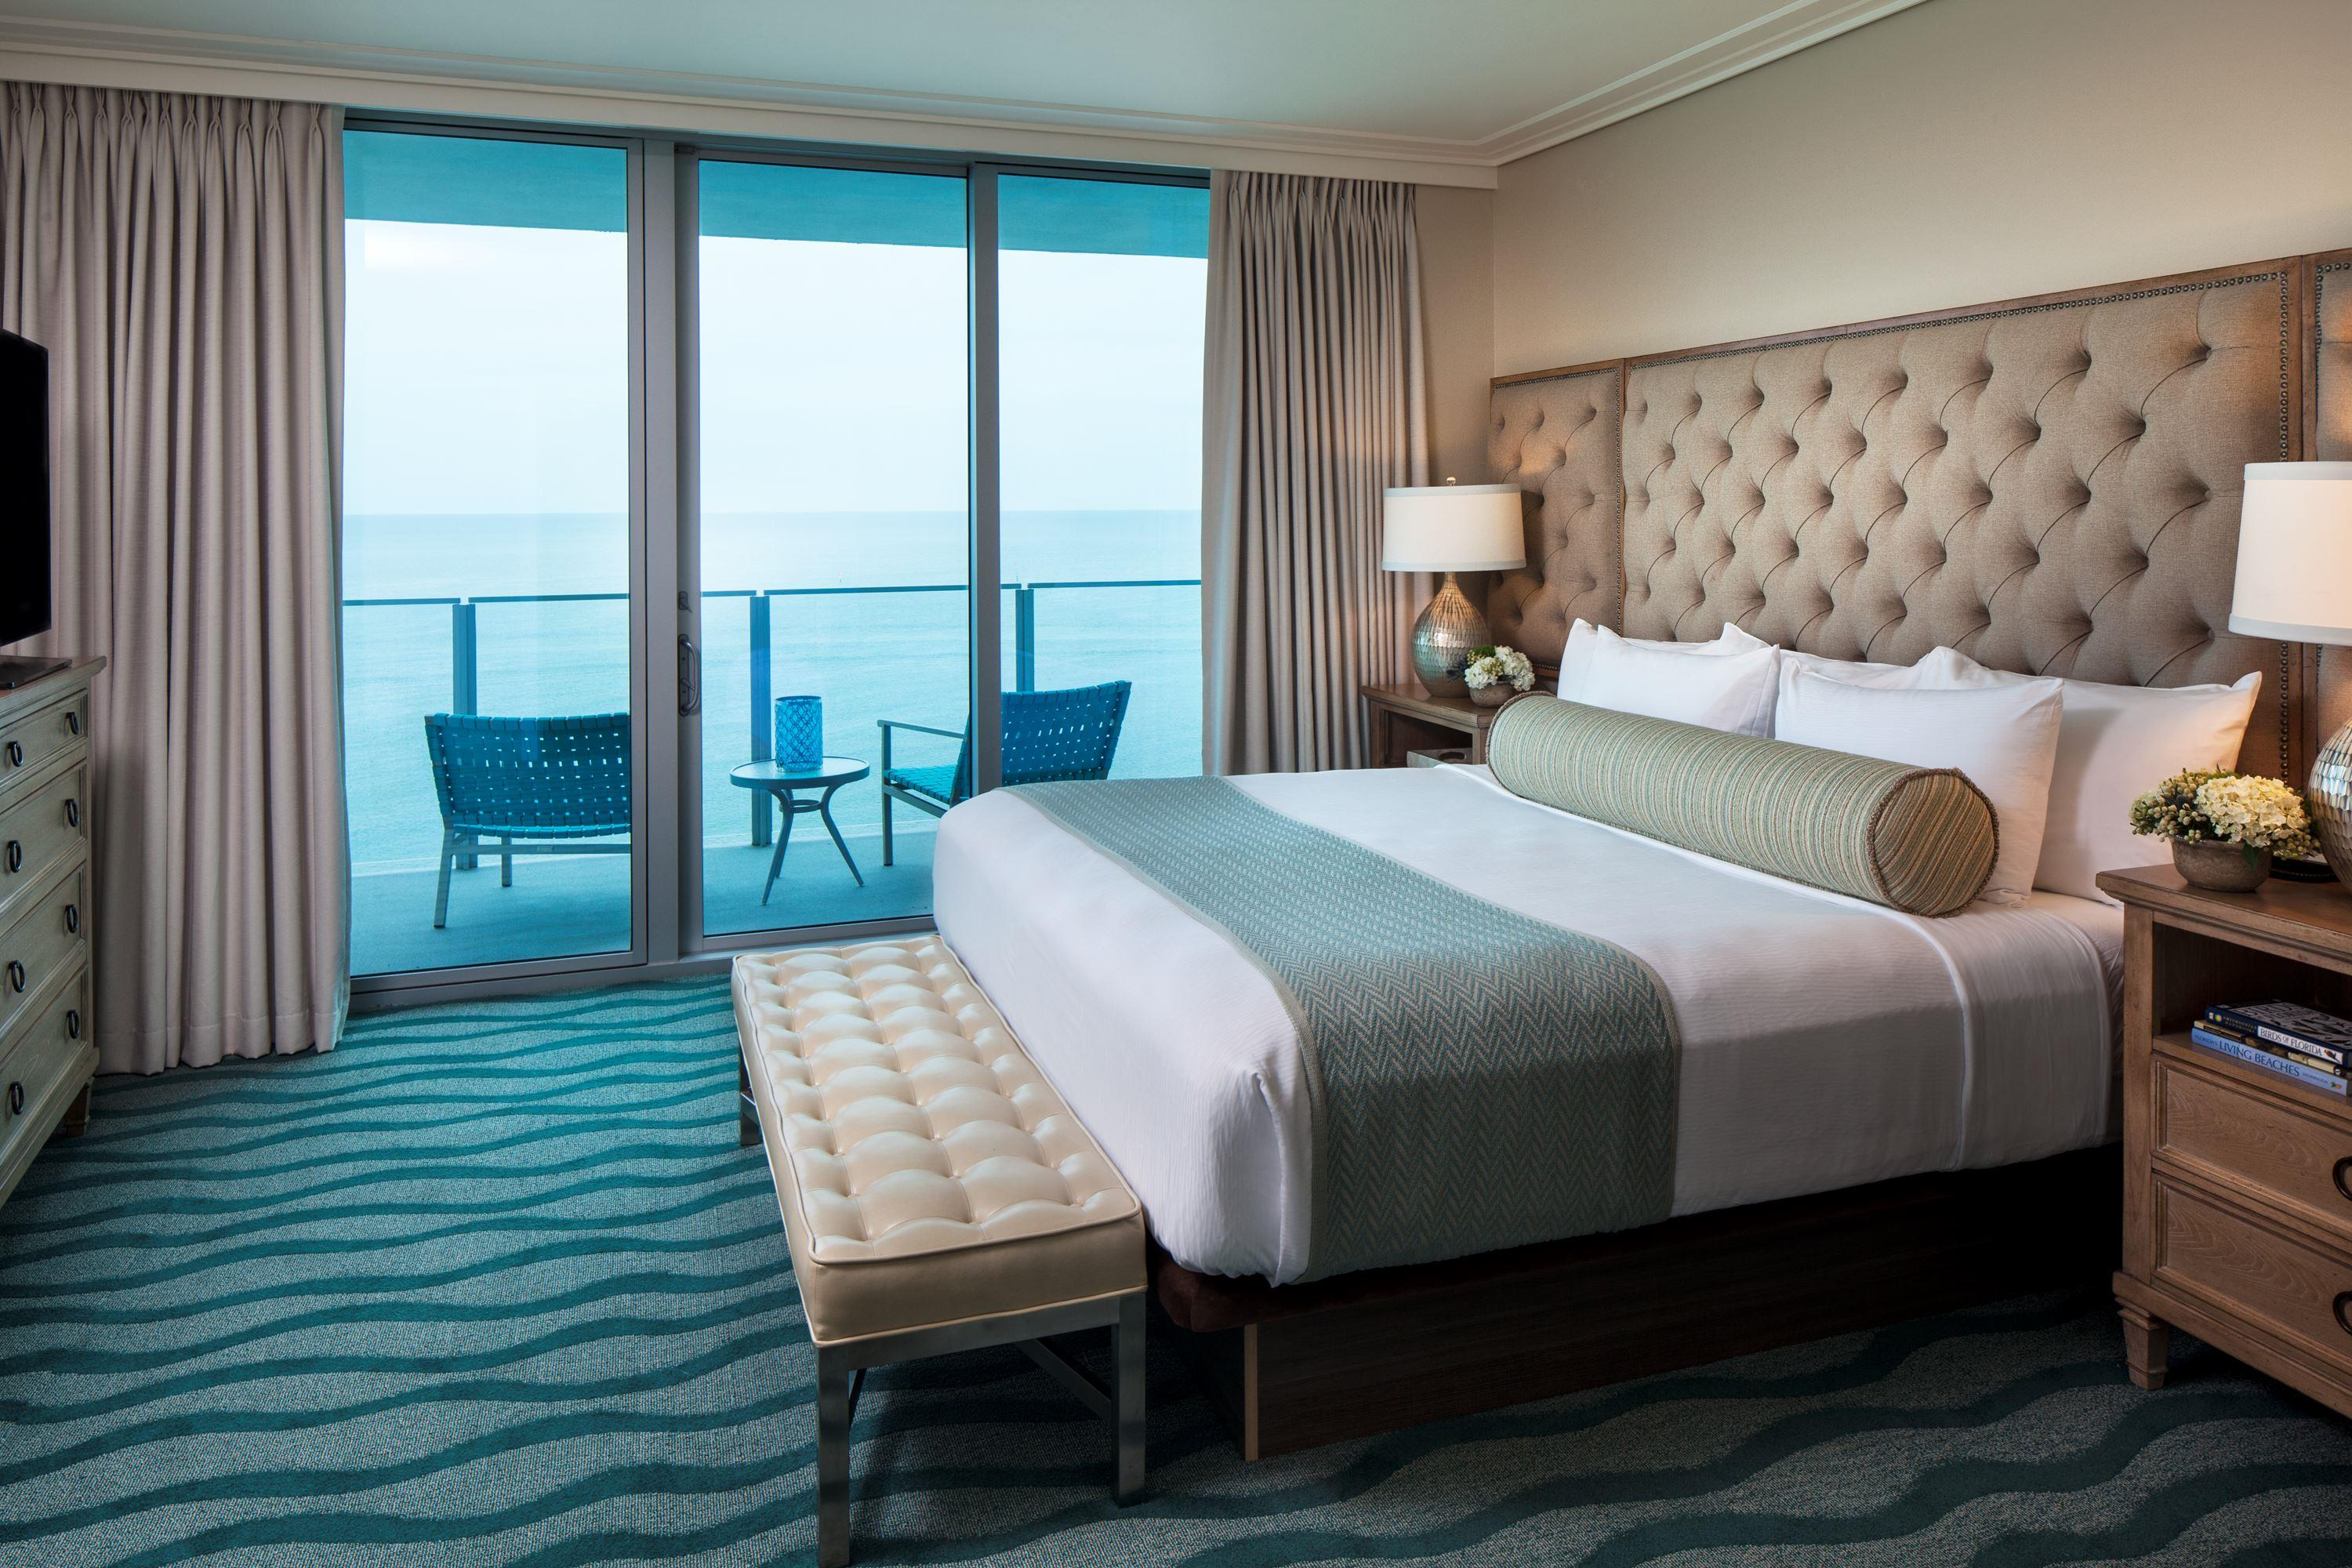 Opal sands resort at 430 south gulfview blvd clearwater beach fl on fave for Hotels that offer 2 bedroom suites